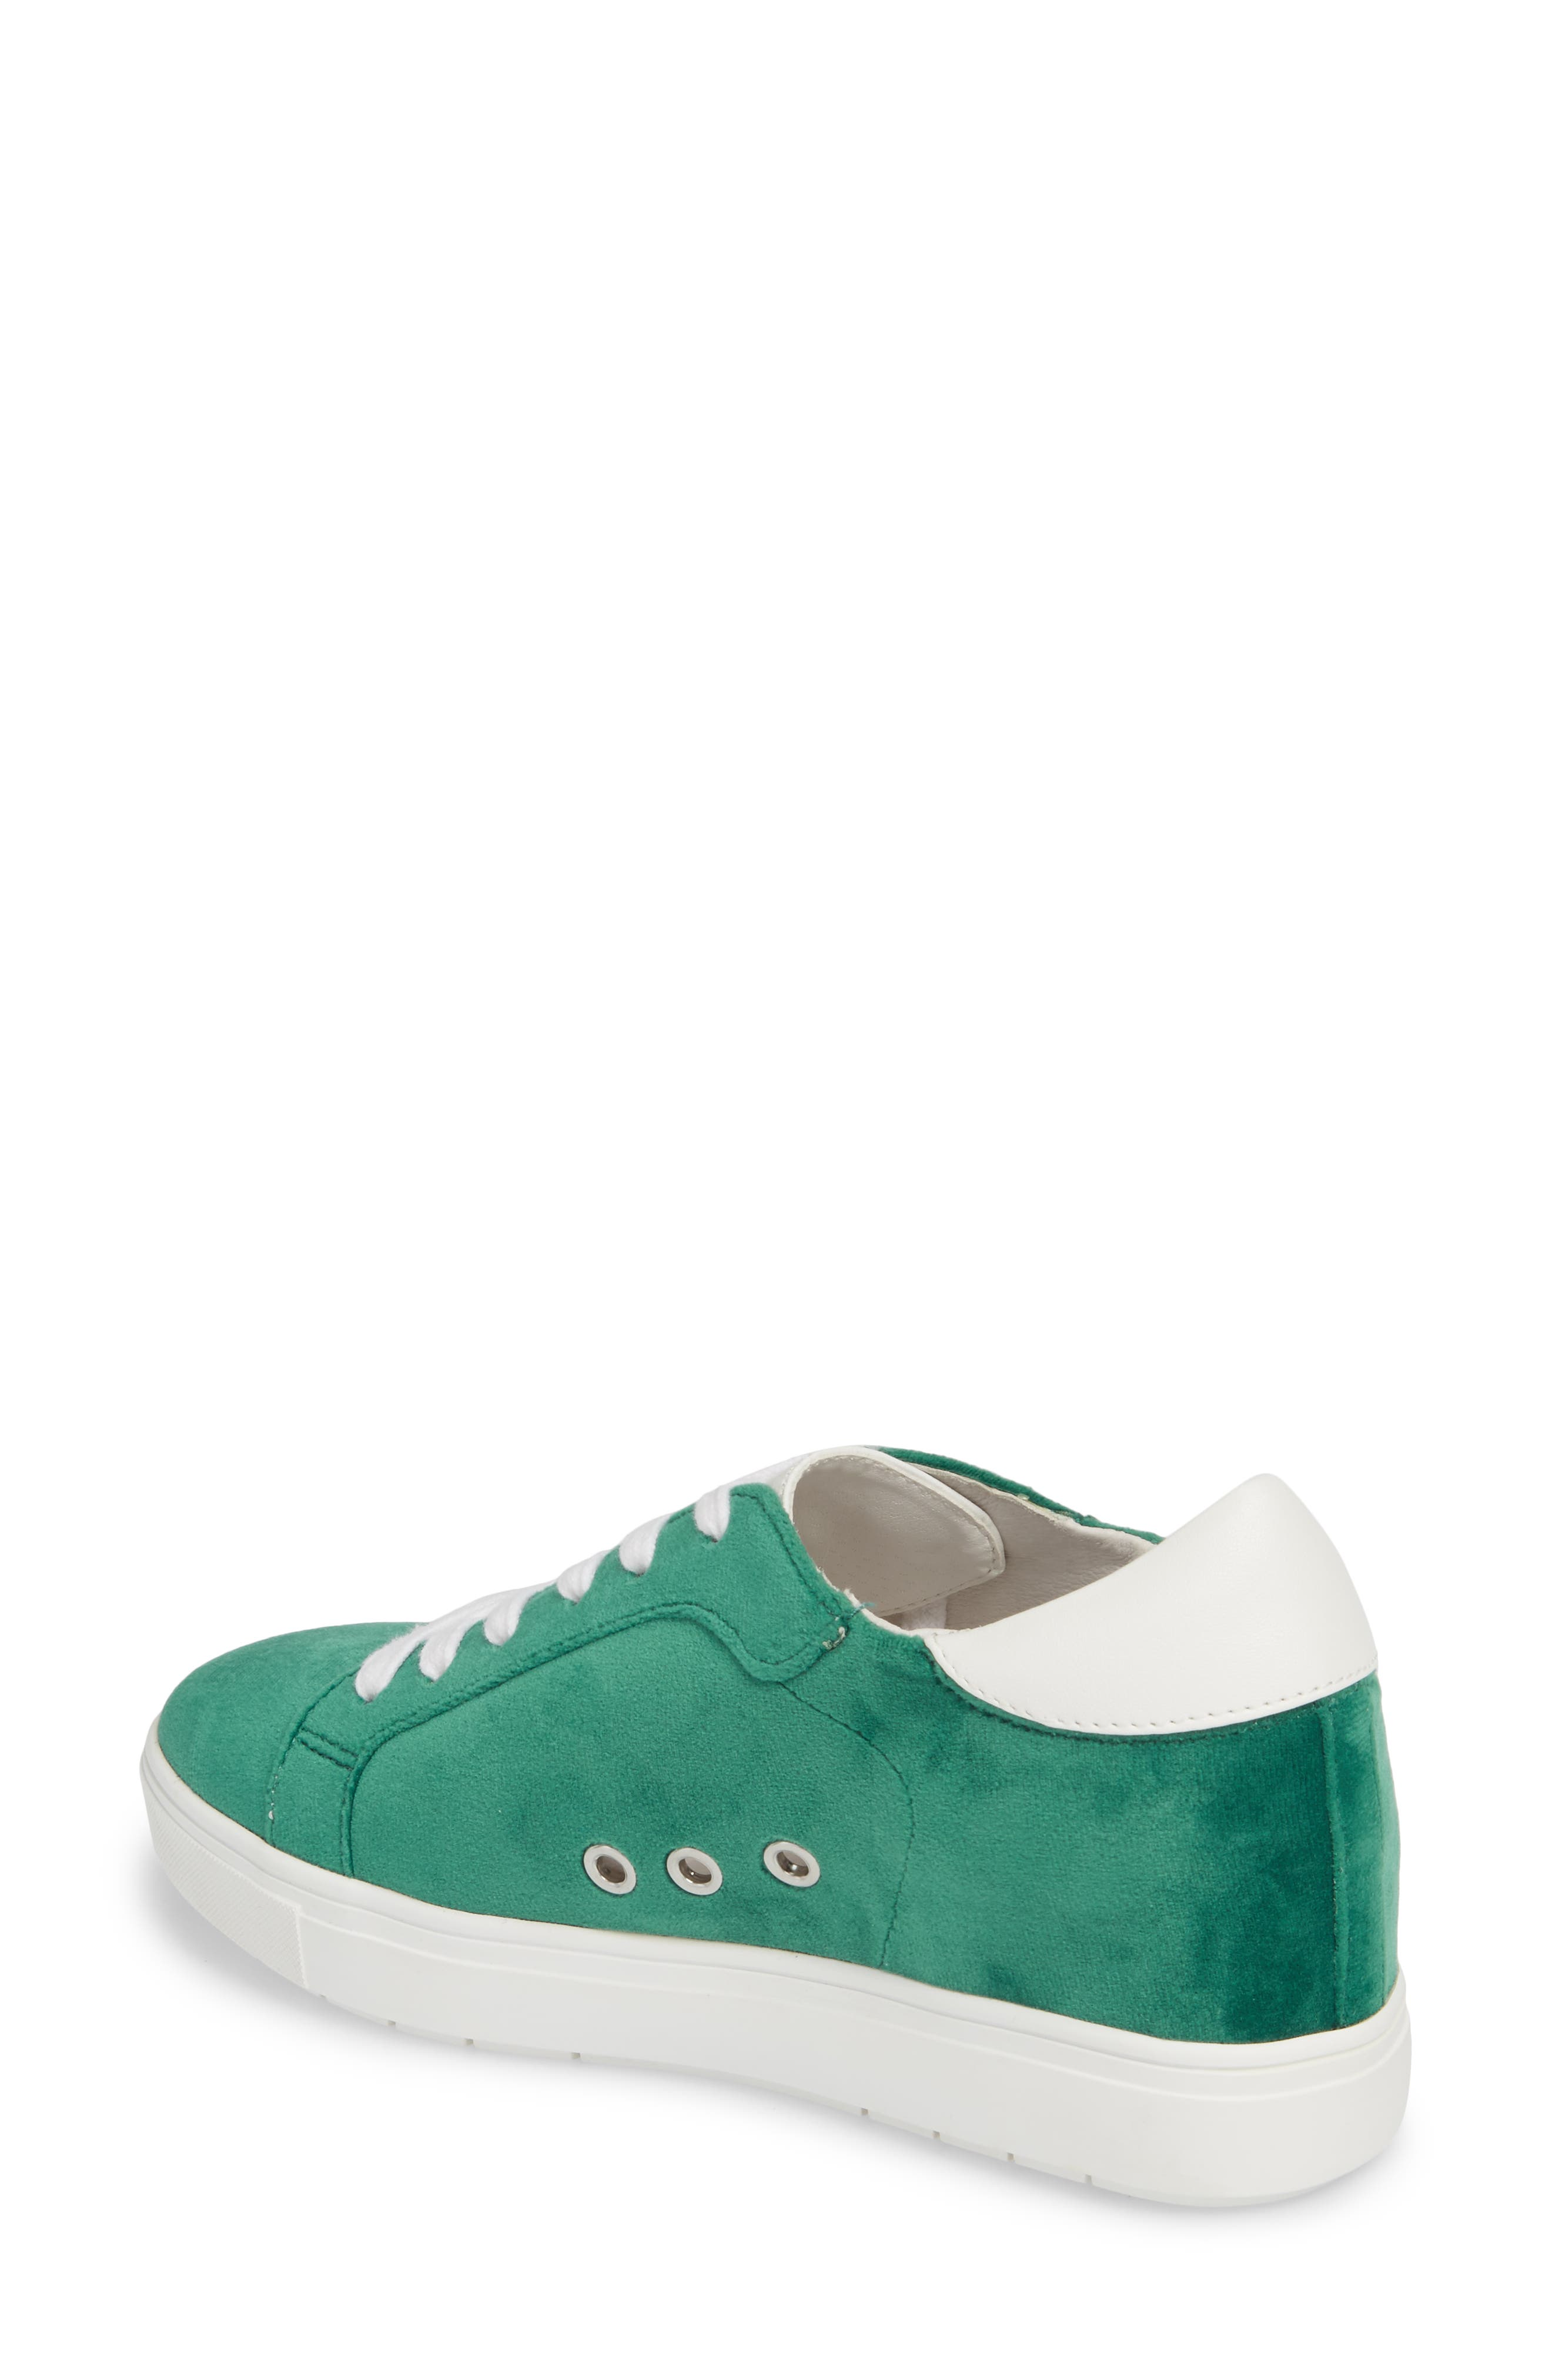 Steal Concealed Wedge Sneaker,                             Alternate thumbnail 6, color,